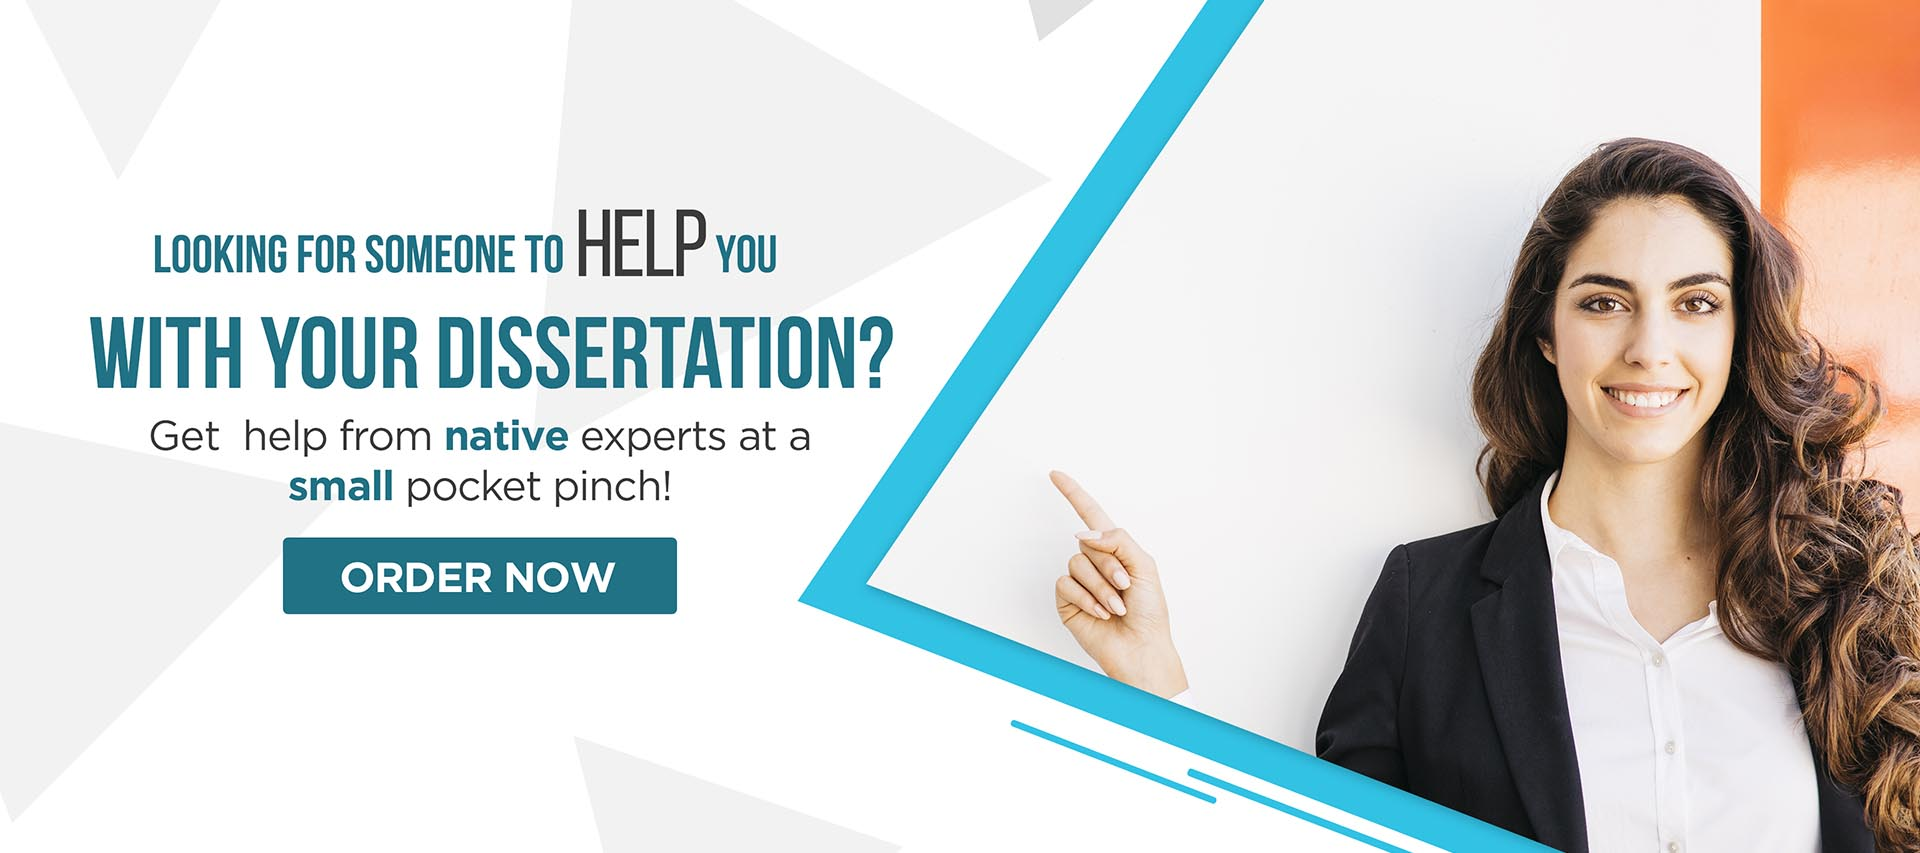 Looking for someone to help you with your dissertation